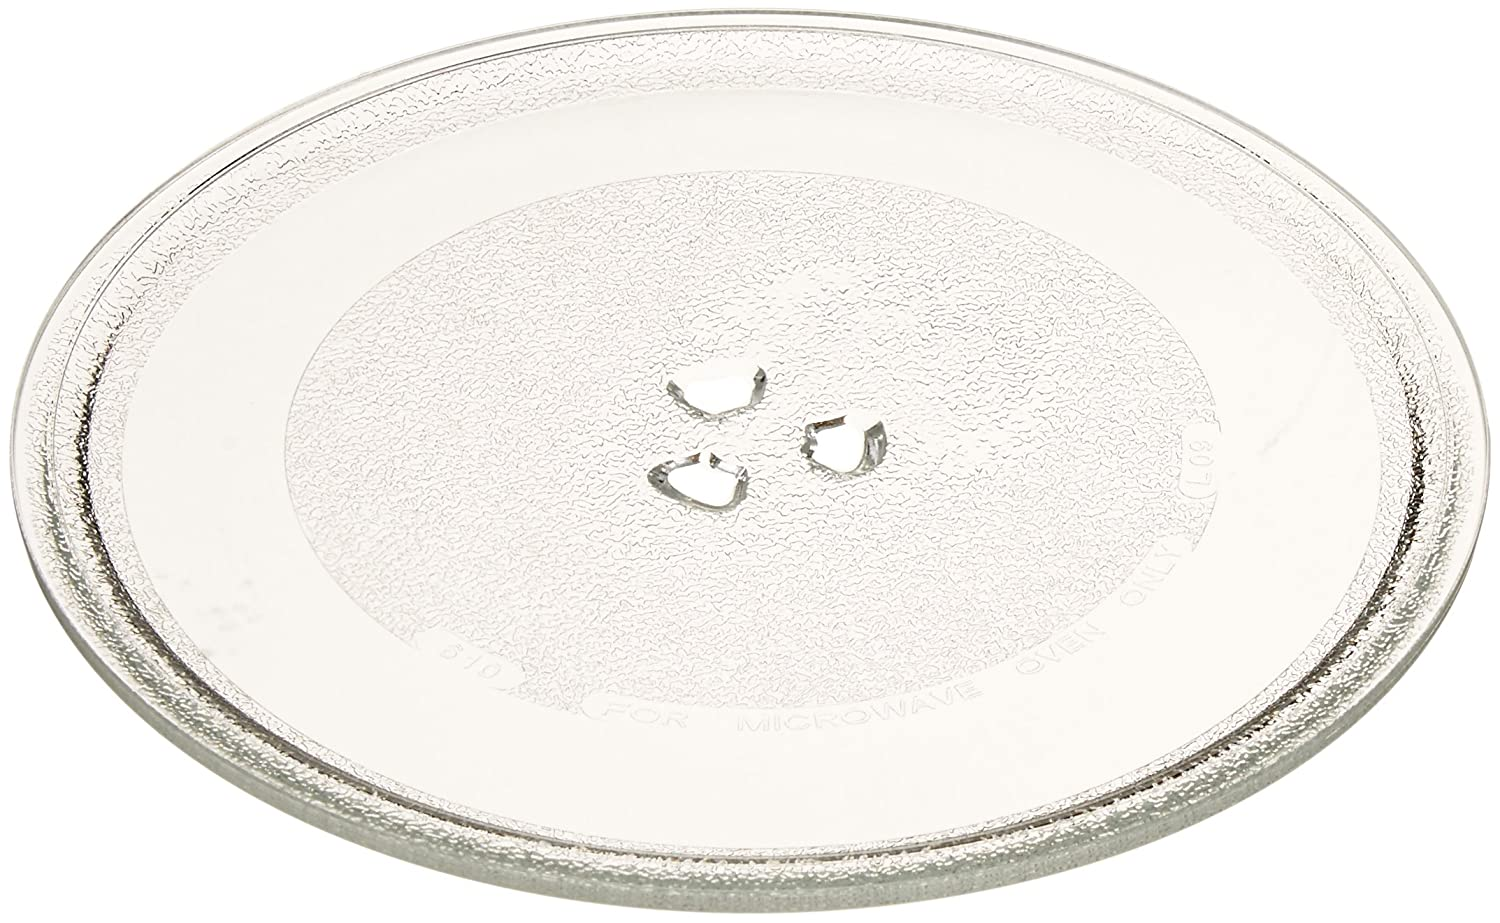 Emerson Microwave Glass Turntable Plate / Tray 10 in 203600